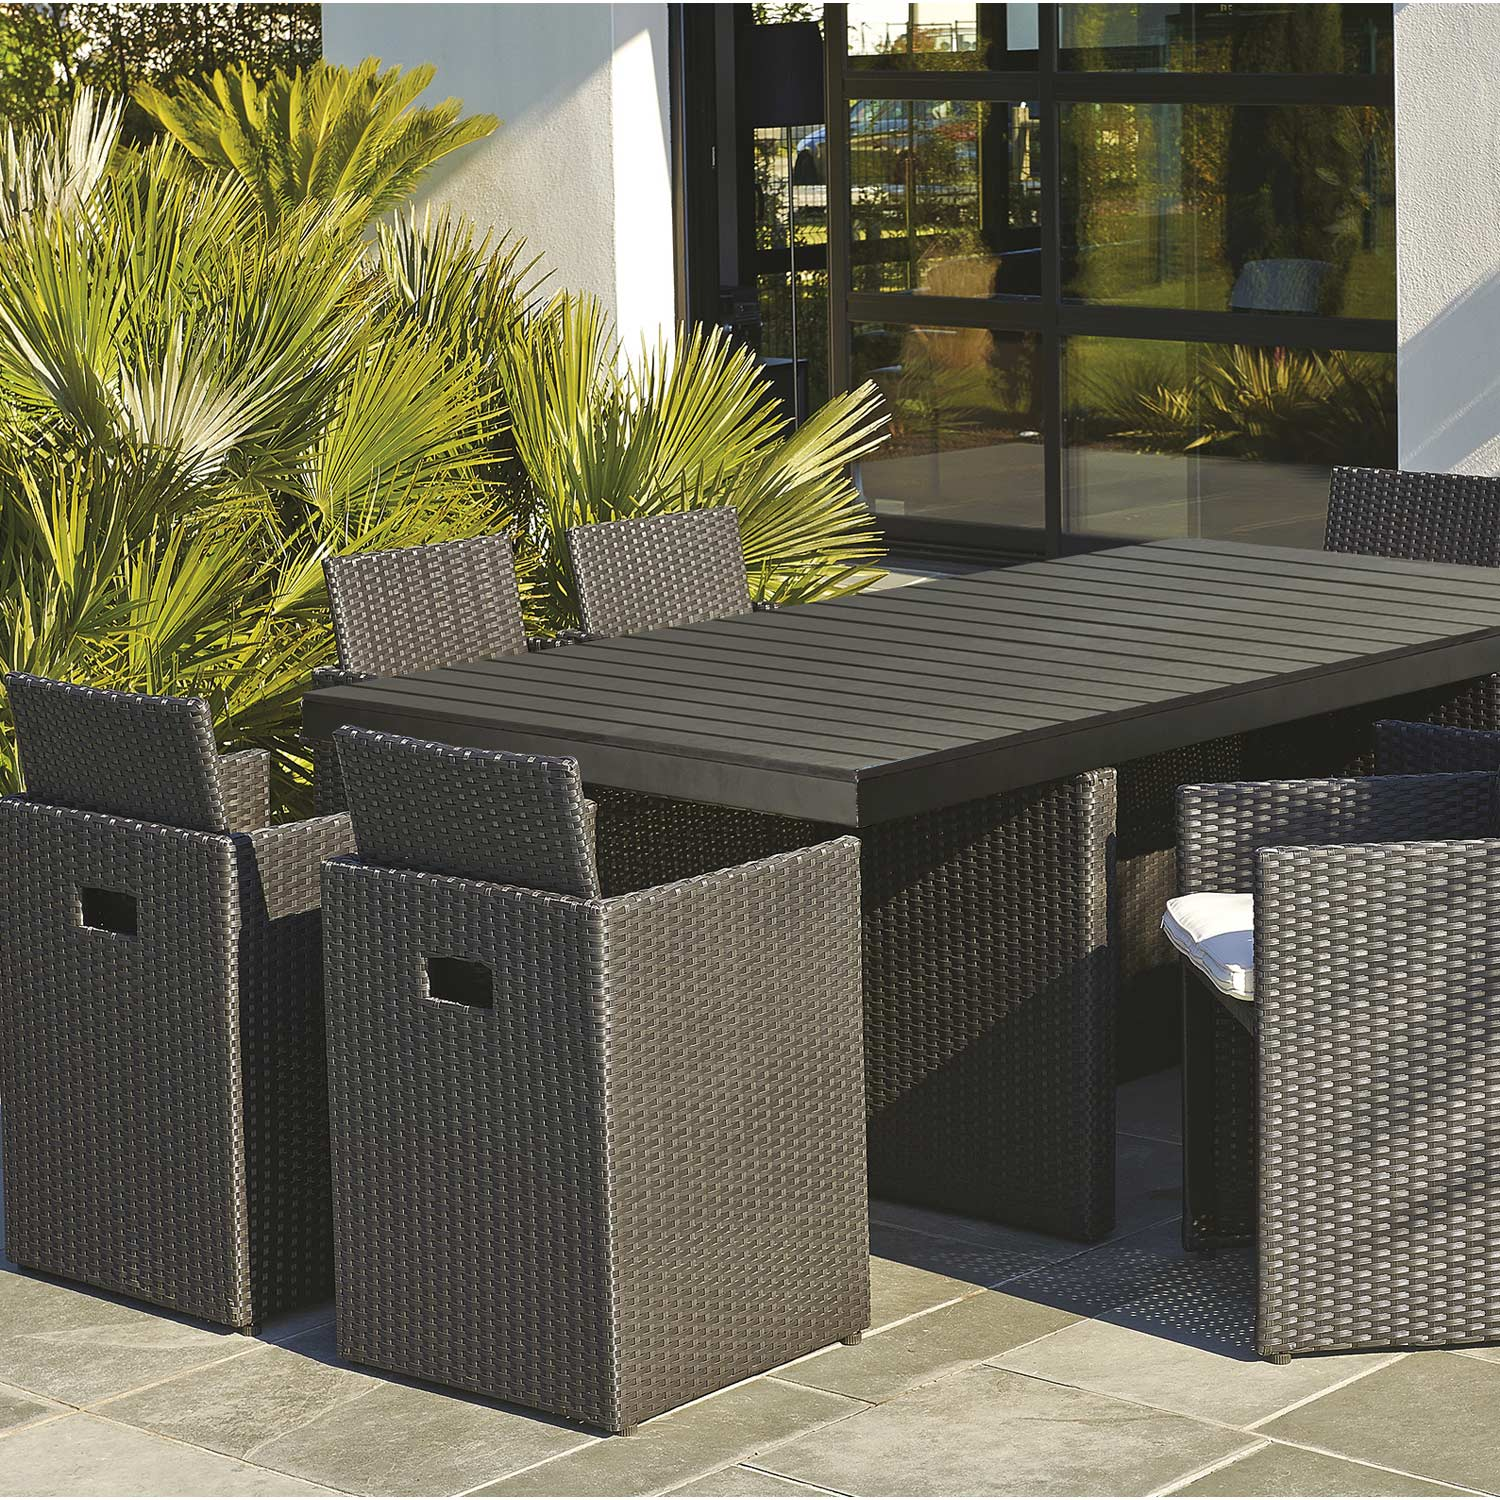 Salon de jardin encastrable r sine tress e noir 1 table - Salons de jardin leroy merlin ...